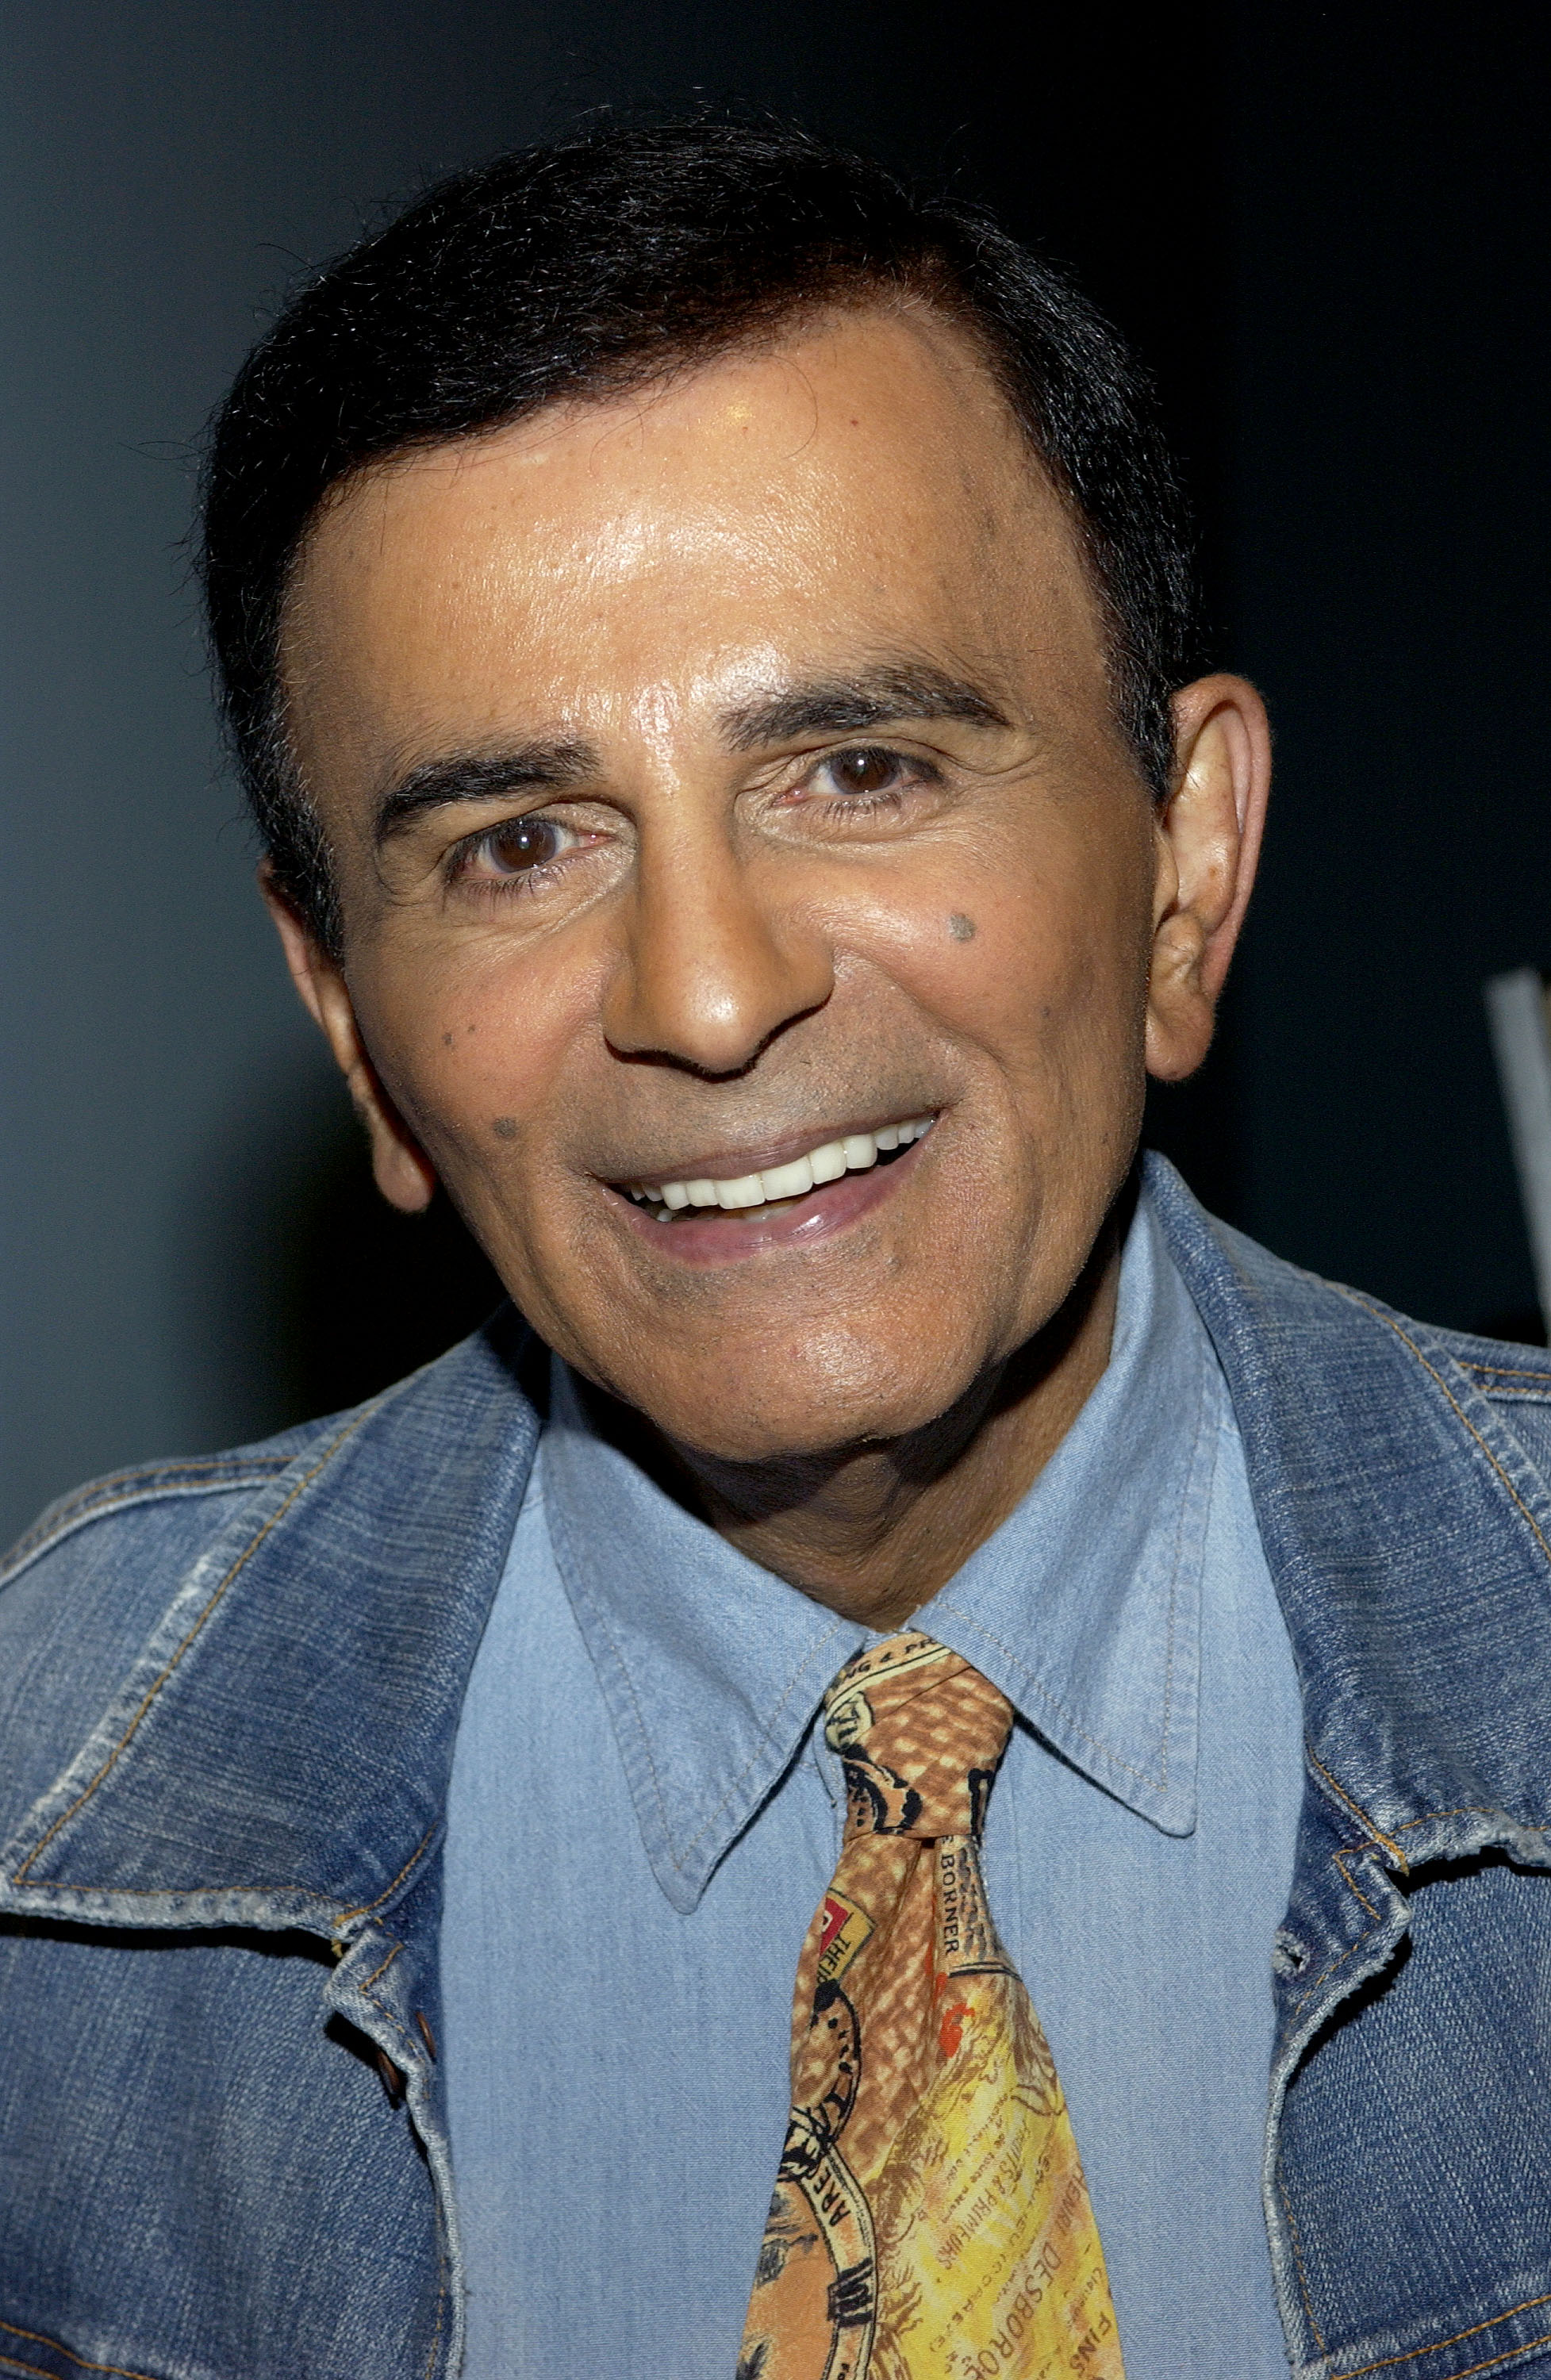 Casey Kasem arrives at the Golden Dads Awards ceremony at the Peterson Automotive Museum on June 15, 2005 in Los Angeles, Ca.